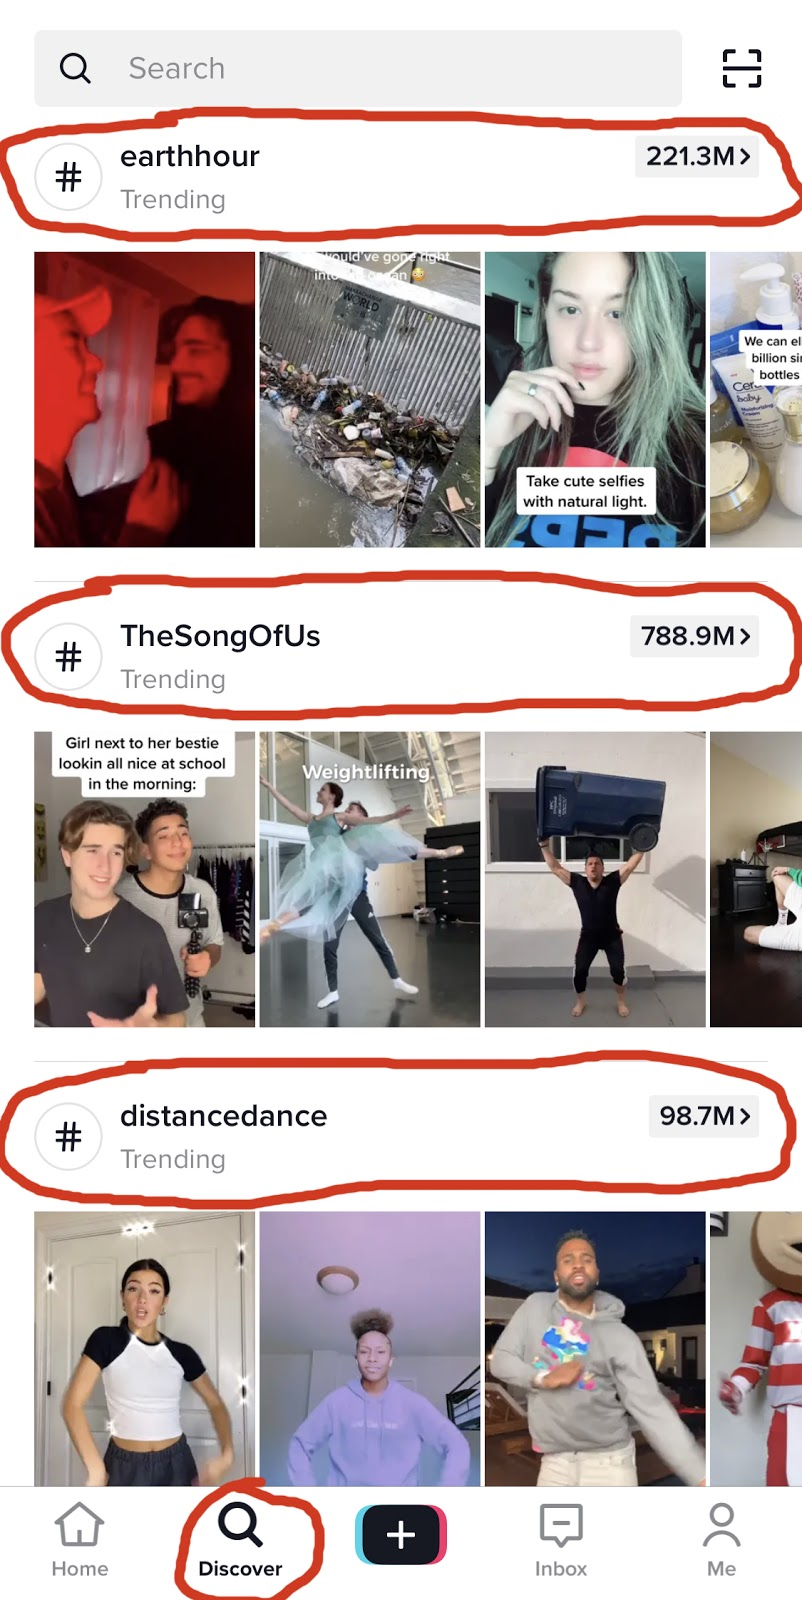 hashtags I used to get viral on tiktok